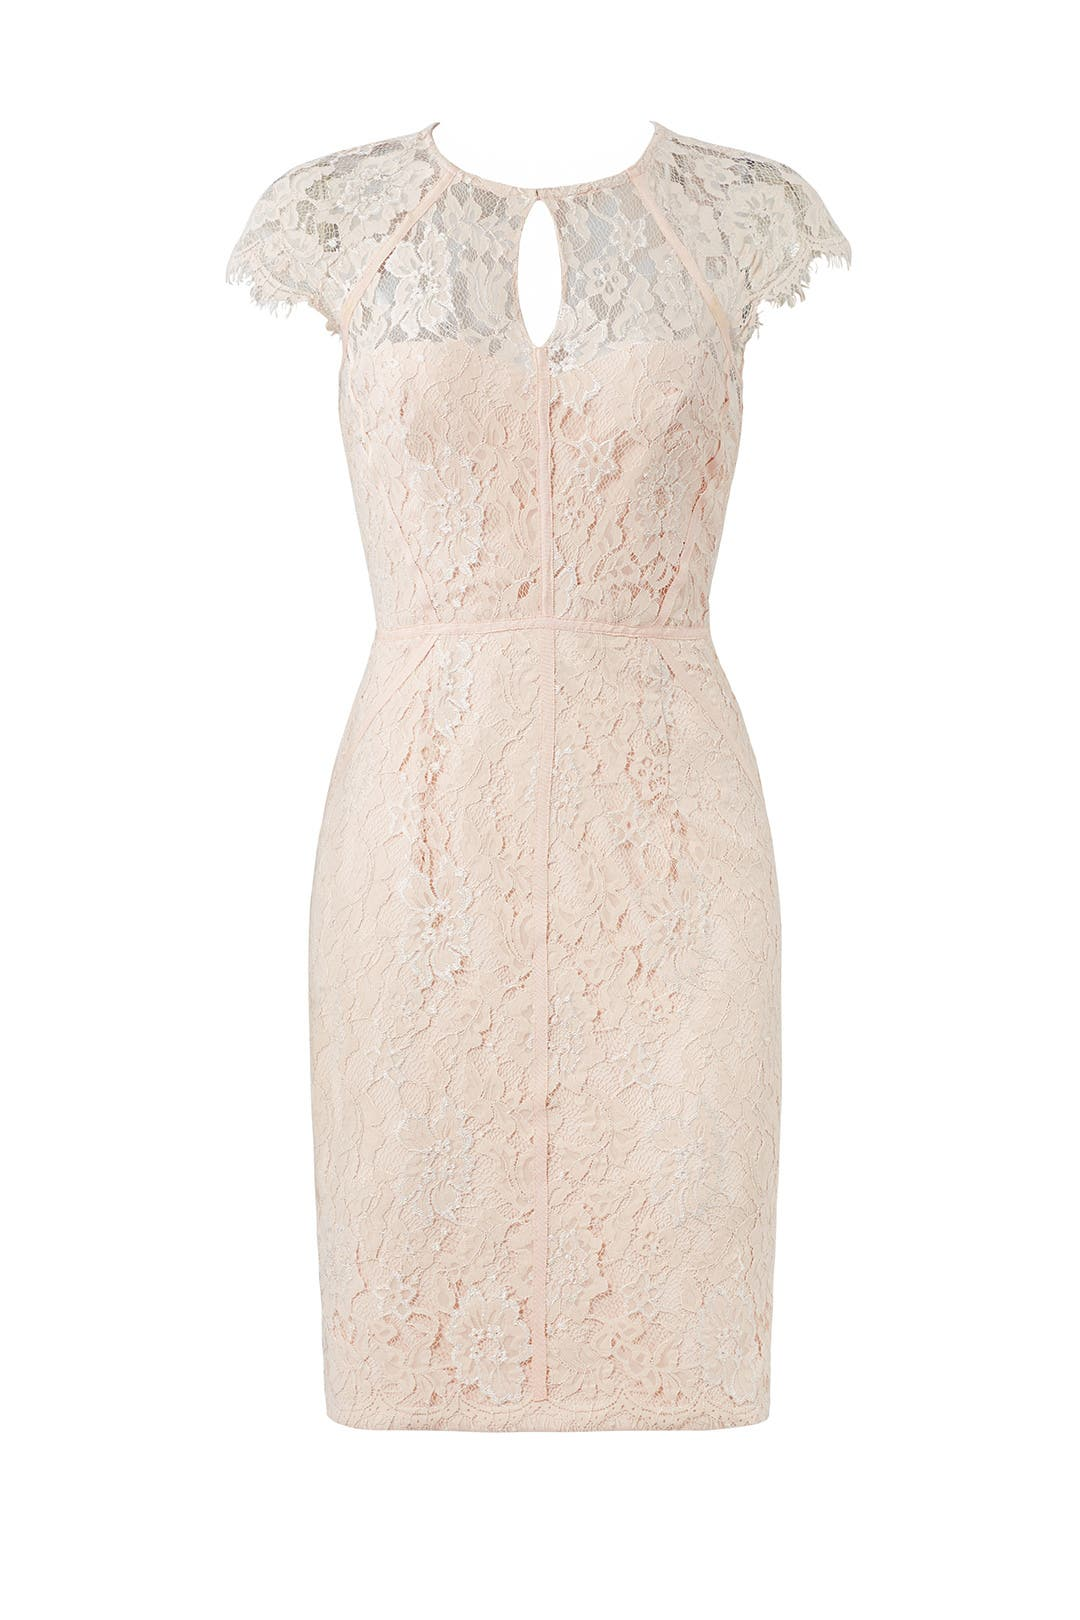 products page 1 wedding gown rental French Kiss Frock by ML Monique Lhuillier